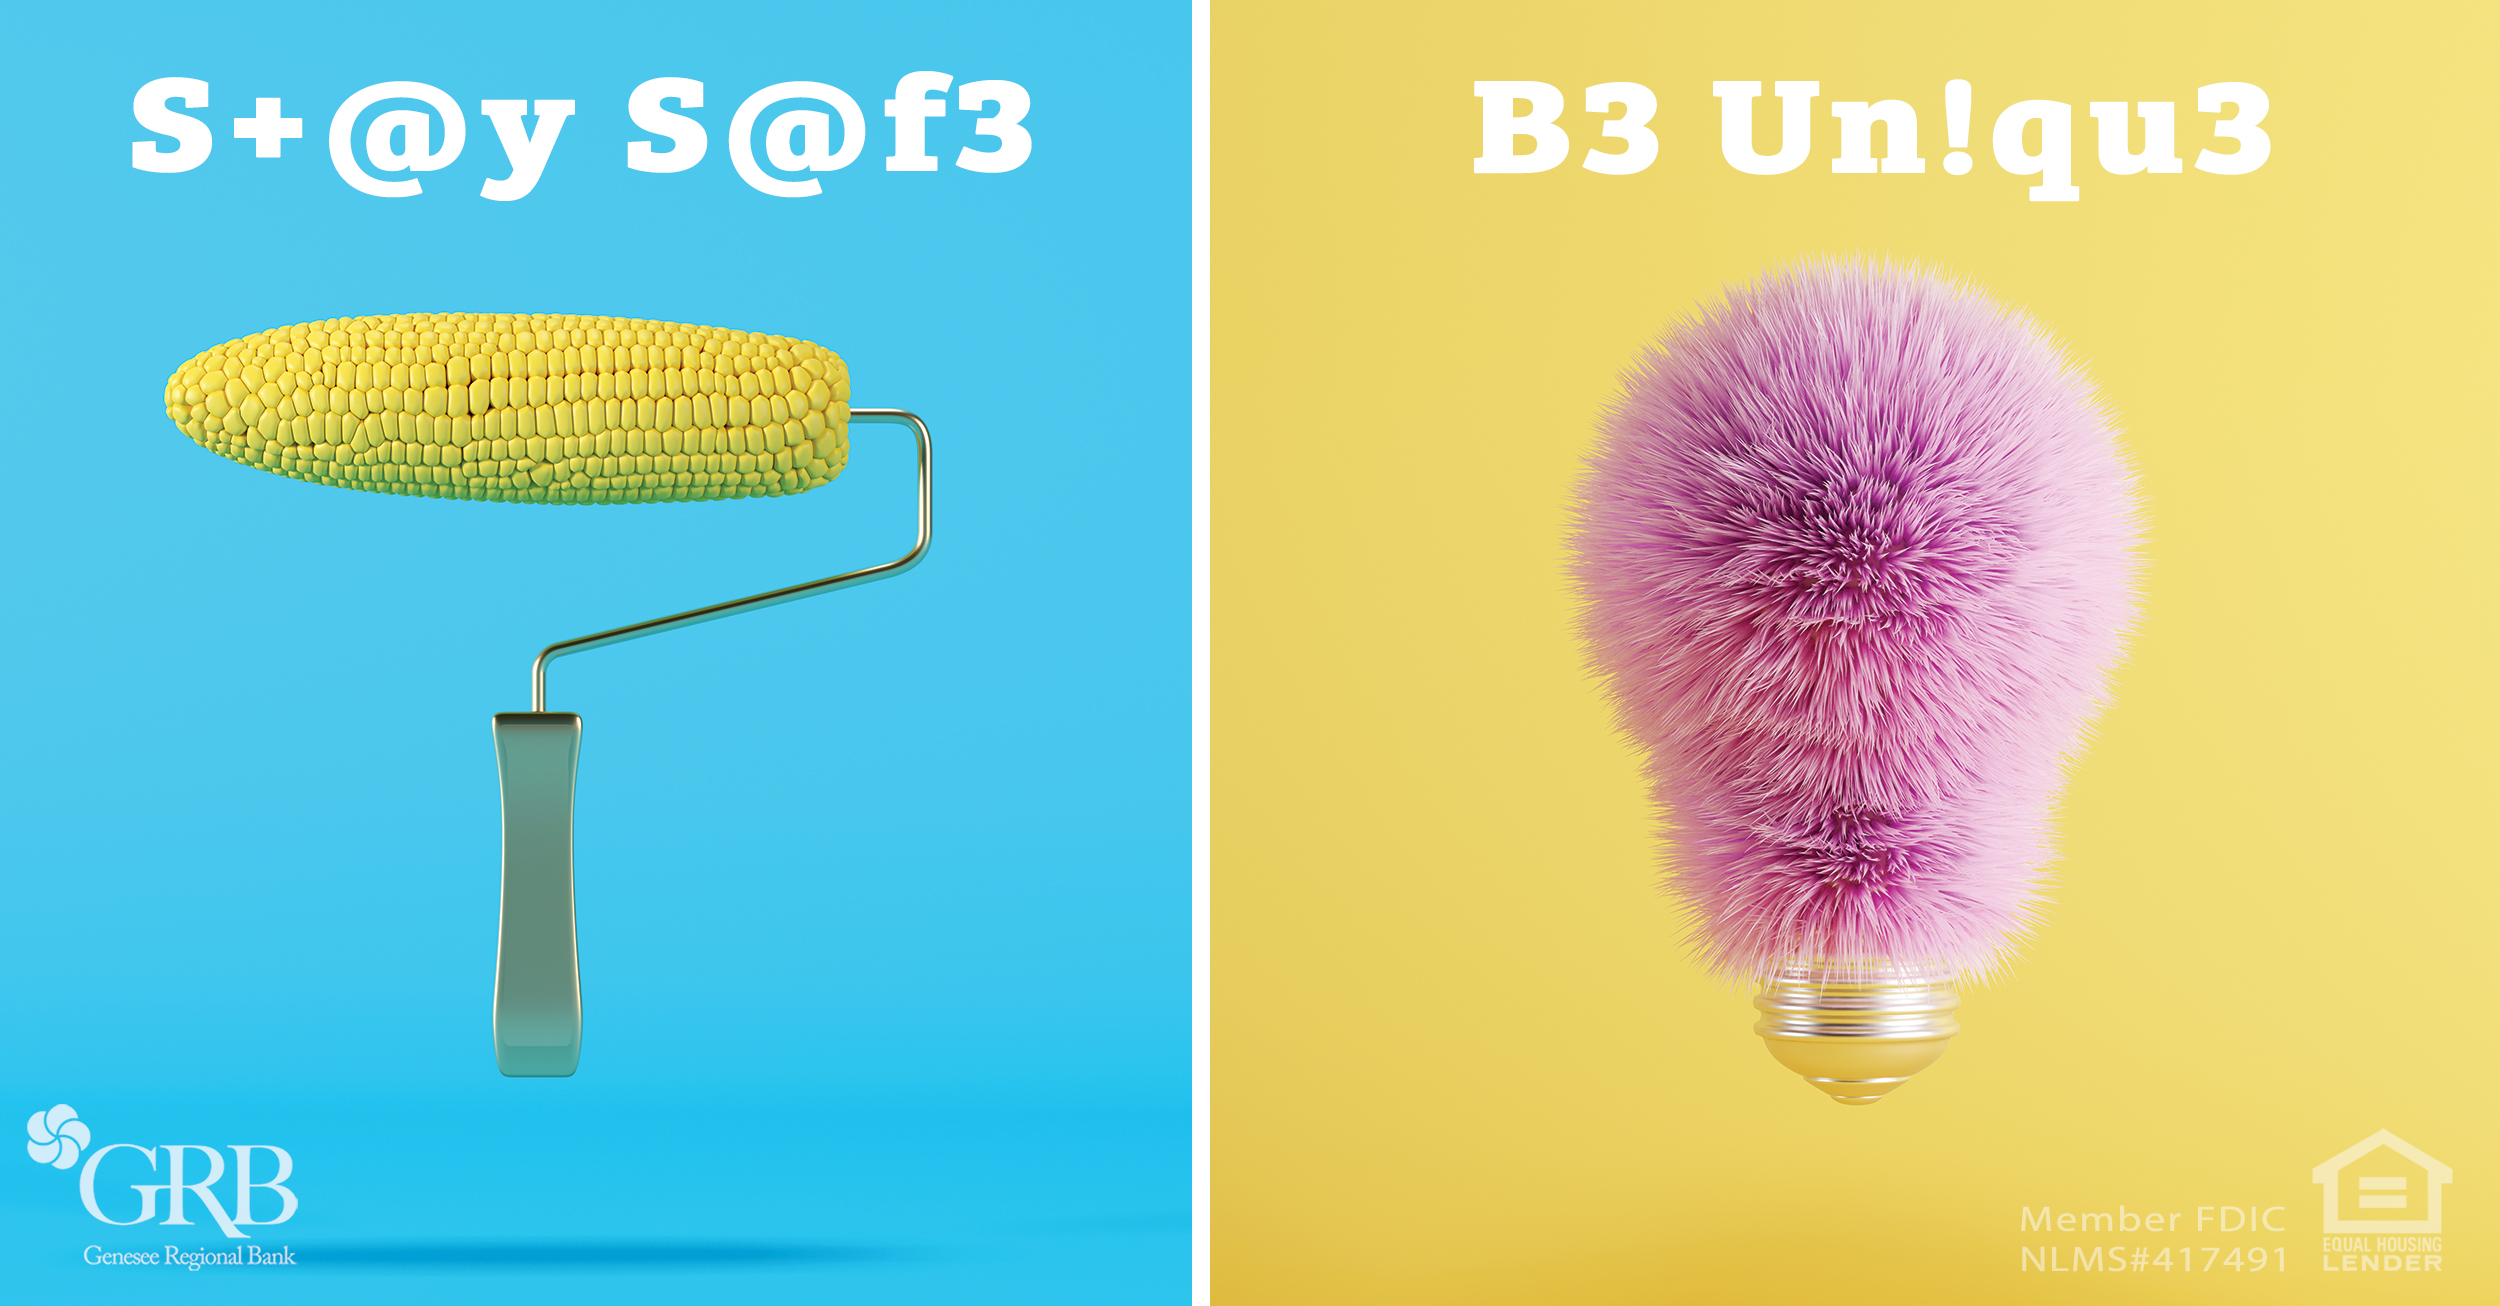 Illustrations of ear of corn on a paint roller and lightbulb covered in a pink, fuzzy covering